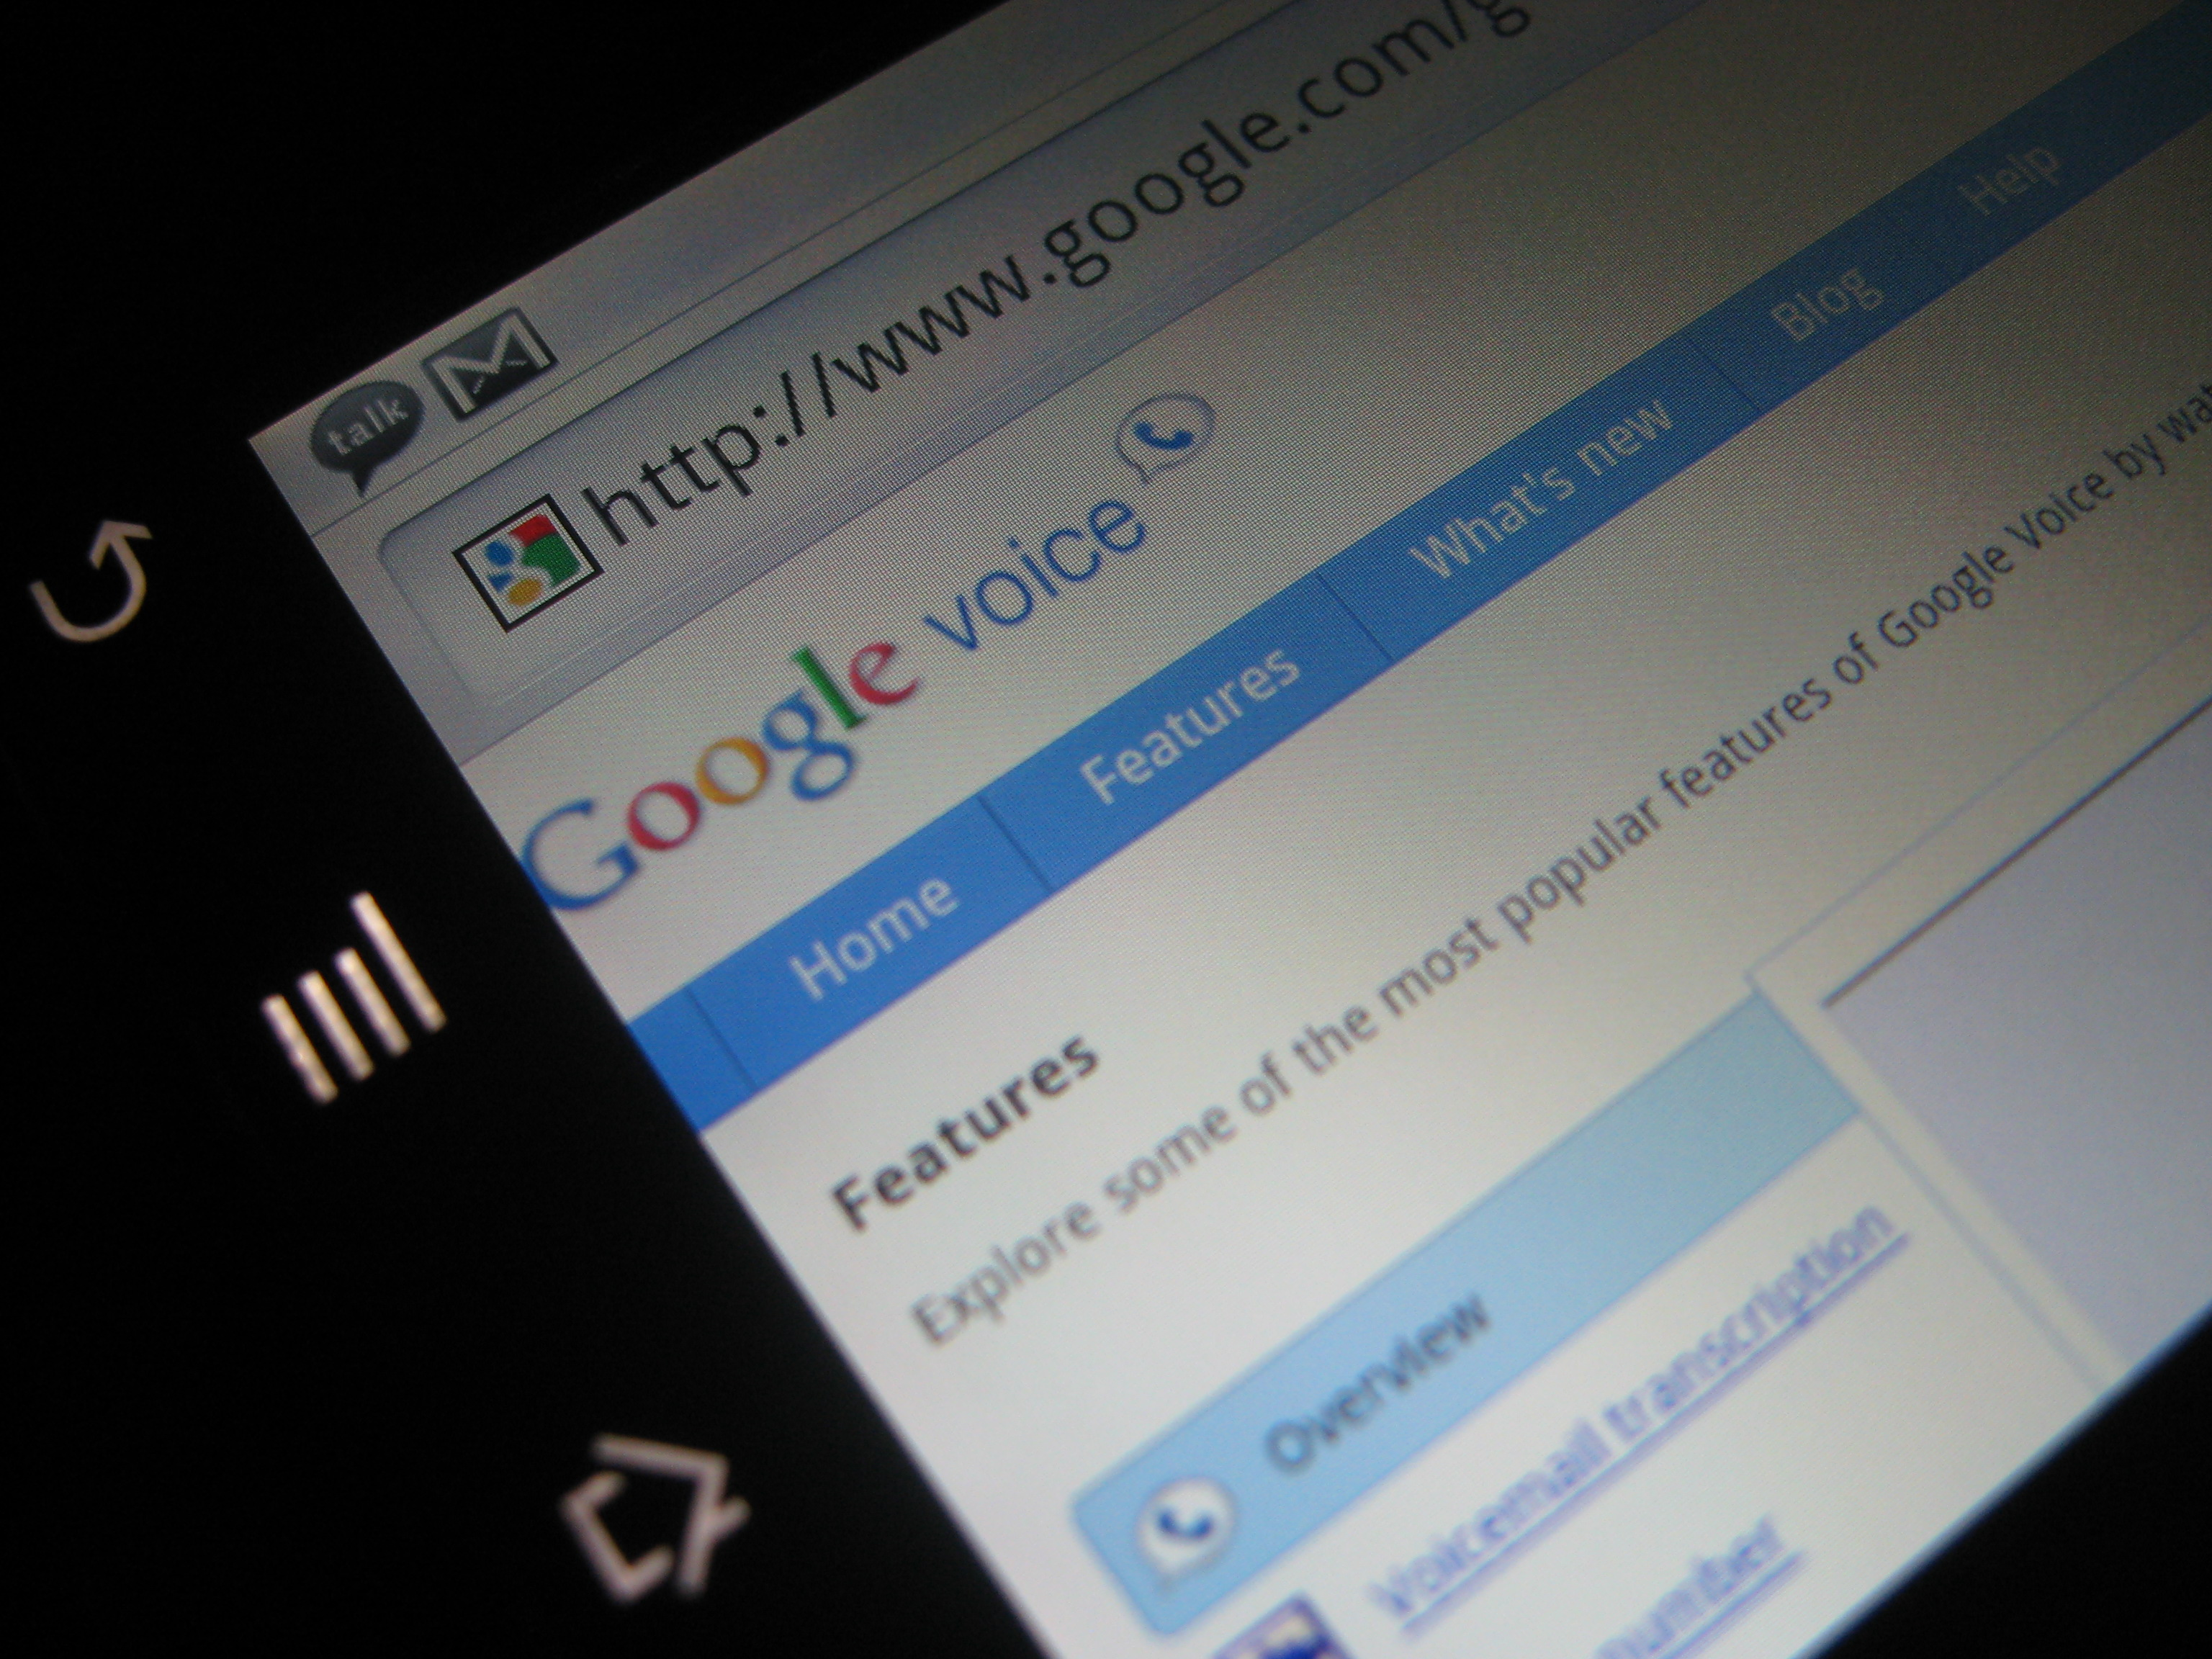 Expect a big media blitz promoting Google Voice soon